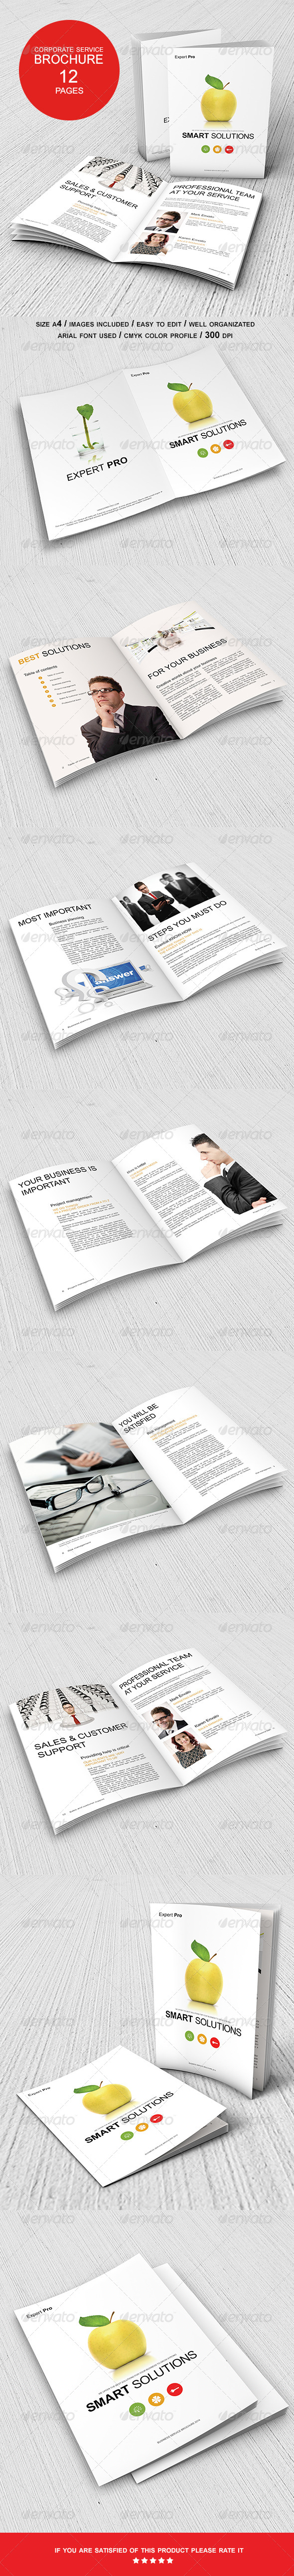 GraphicRiver Corporate Management Solutions Brochure 6941482